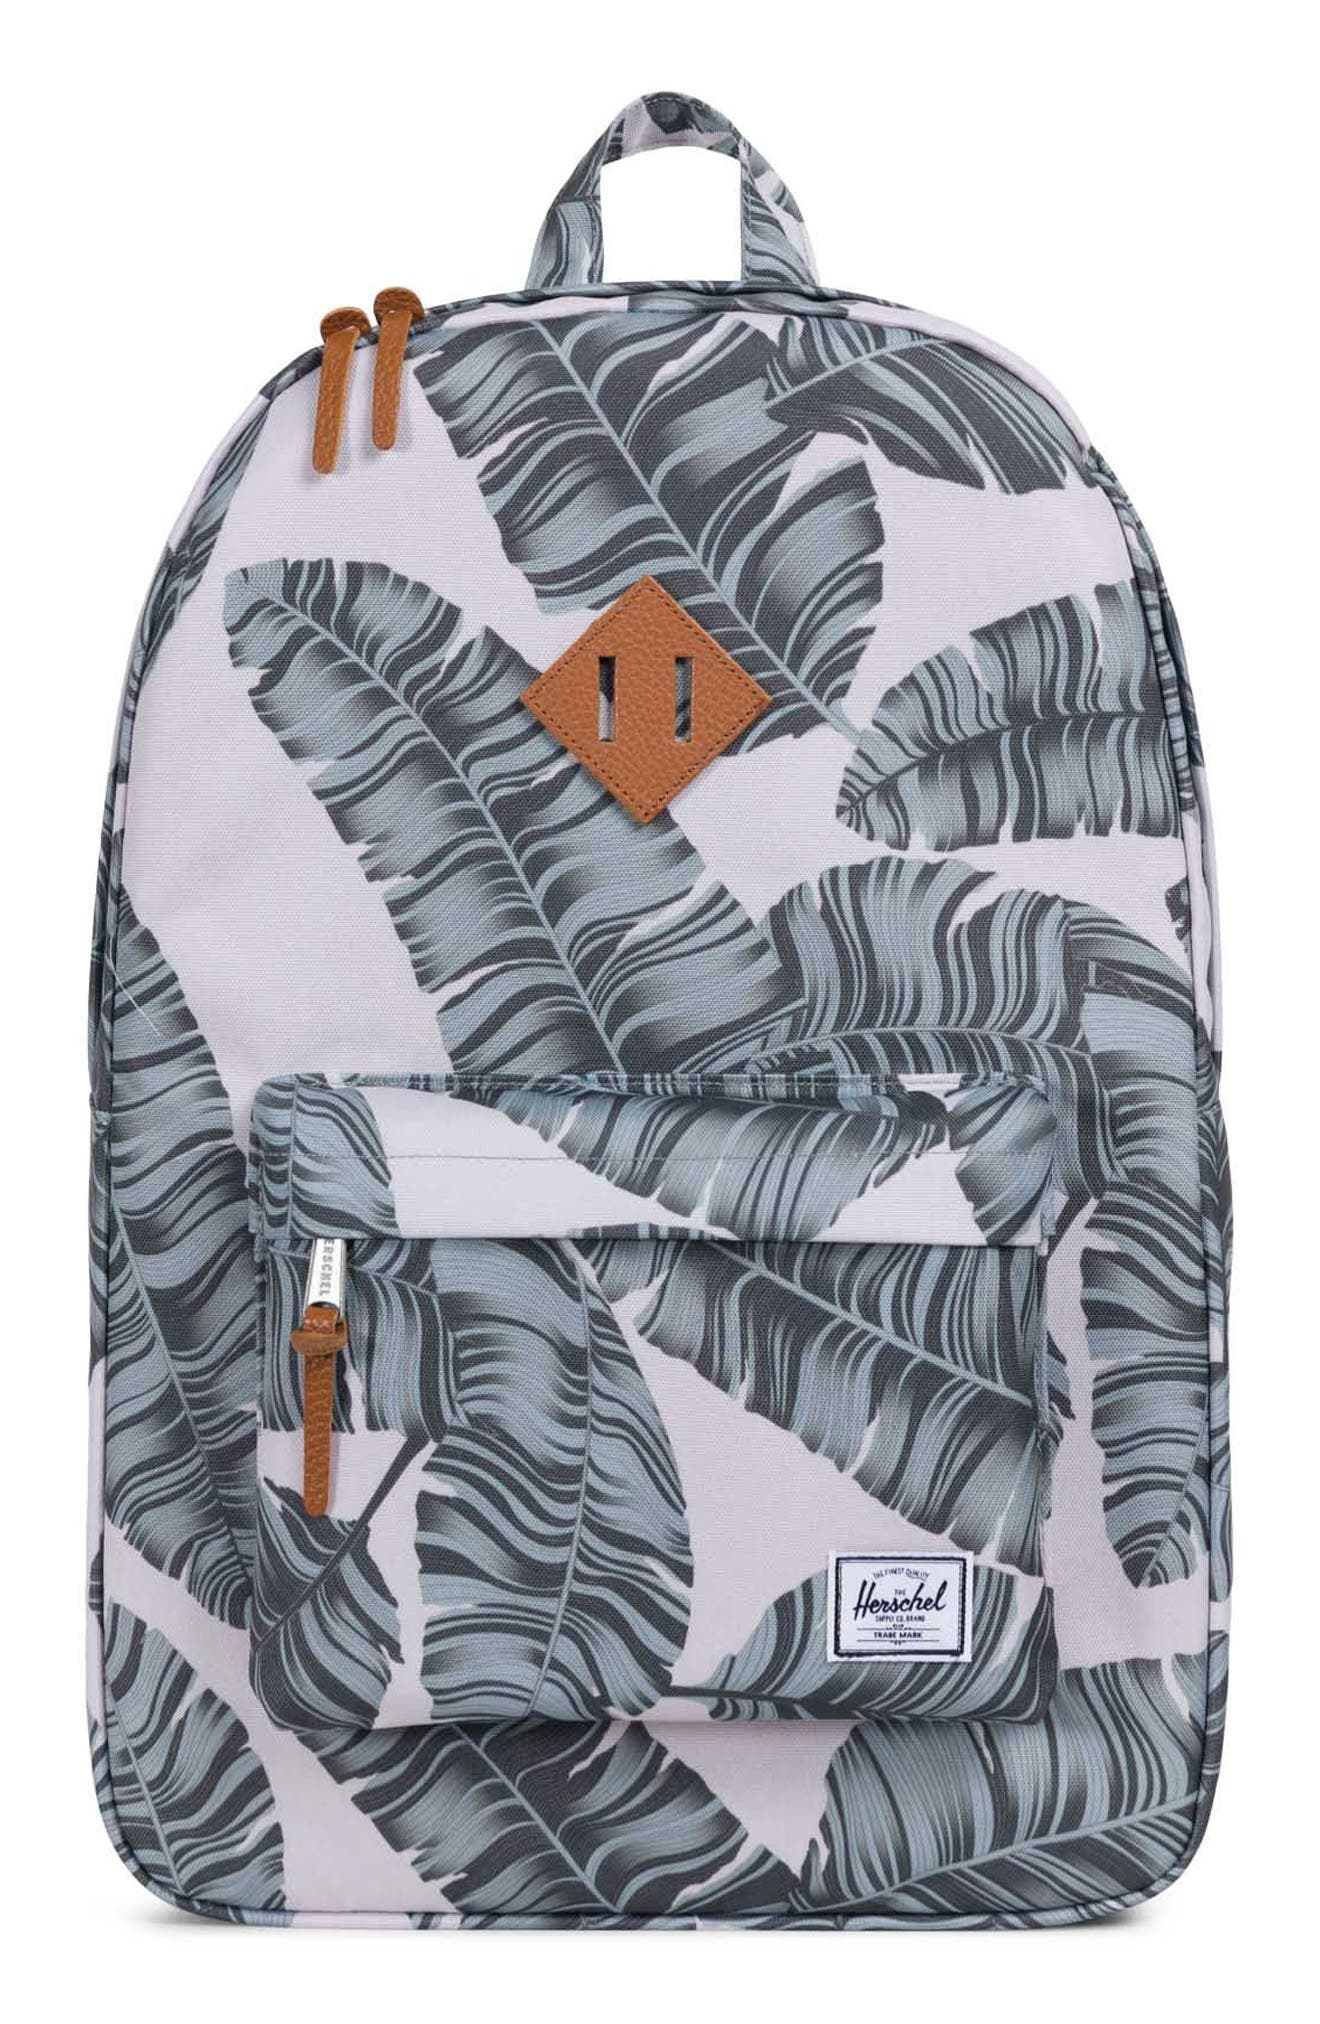 Heritage Backpack,                             Main thumbnail 1, color,                             Silver Birch Palm/ Tan